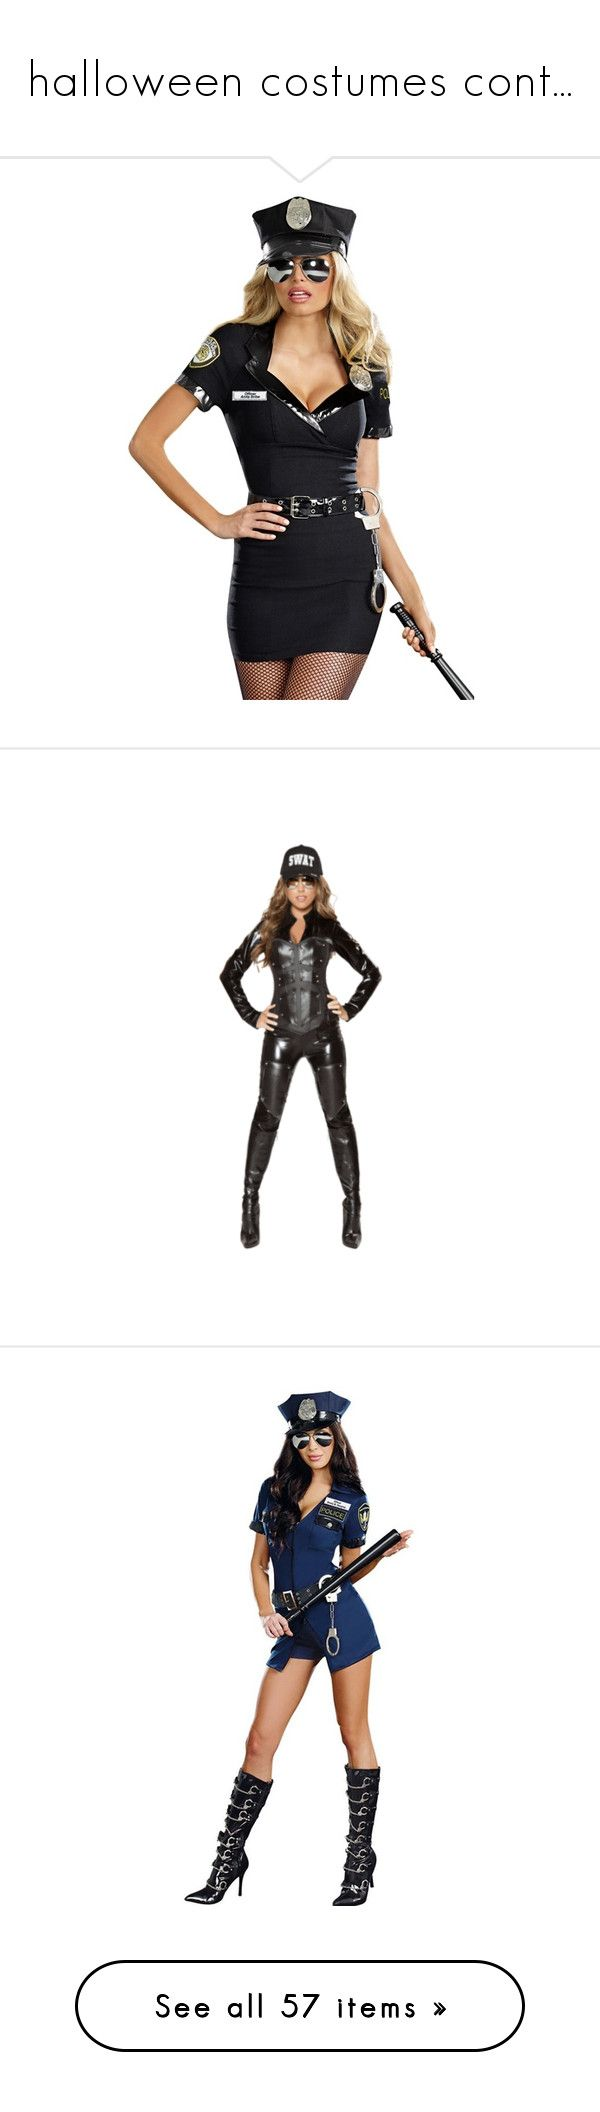 """halloween costumes cont..."" by bucketlistdiary on Polyvore featuring costumes, sexy police woman costume, police woman costume, policeman costume, police woman halloween costume, police officer halloween costume, police man costume, cop halloween costume, sexy police officer halloween costume and white costume"